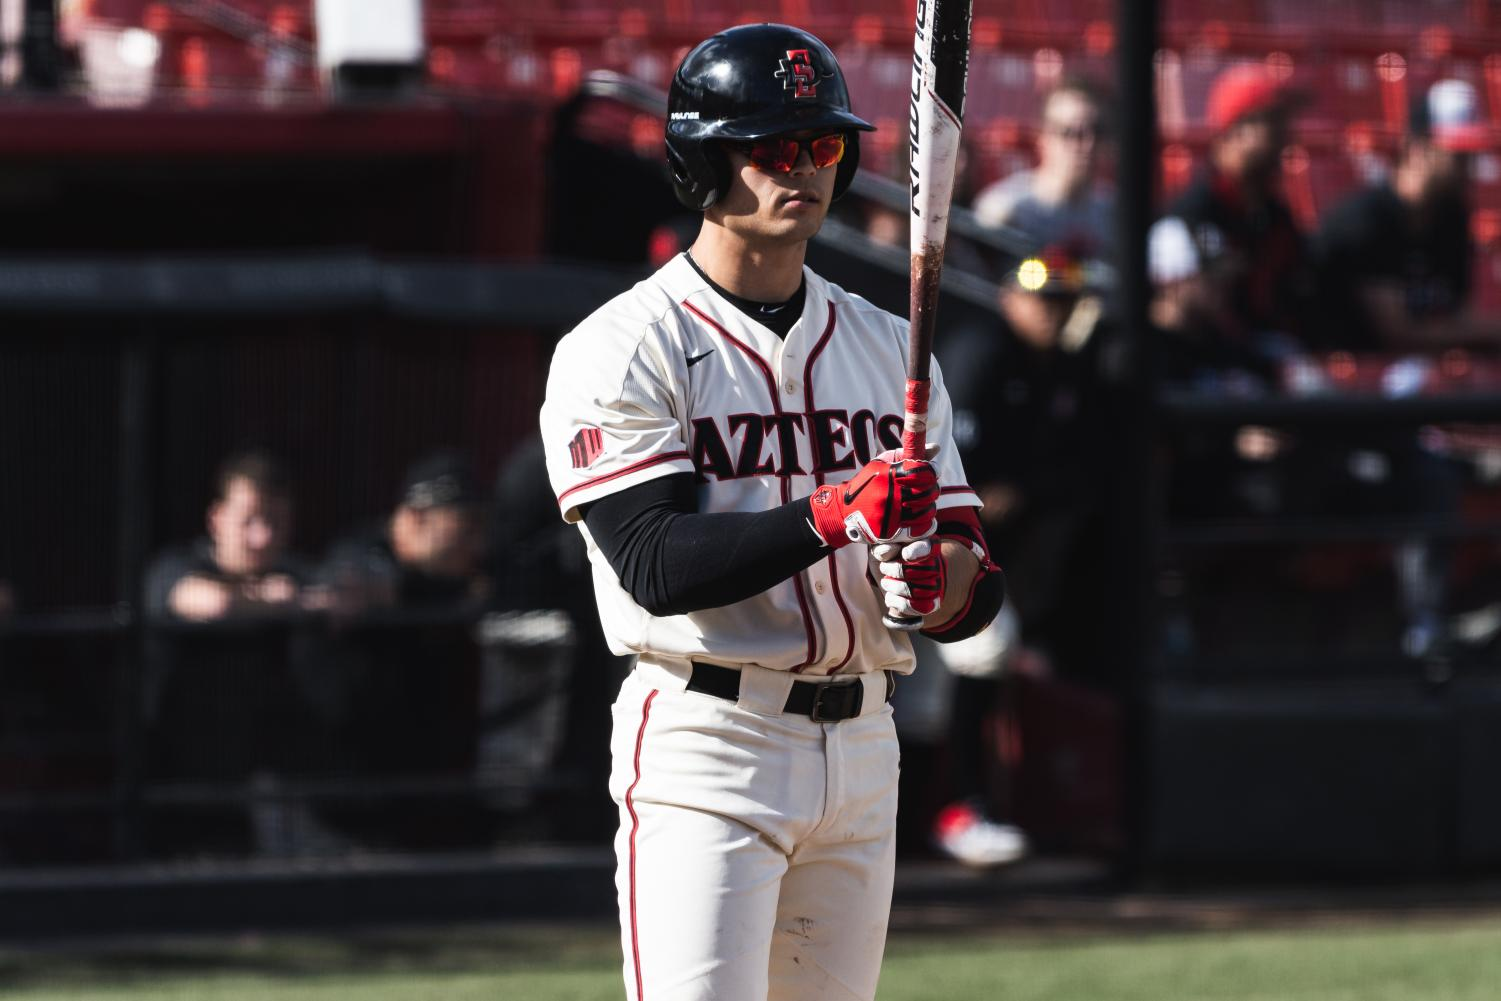 Senior designated hitter Chad Bible prepares to bat during the Aztecs 9-8 loss to San Francisco on Feb. 16 at Tony Gwynn Stadium.